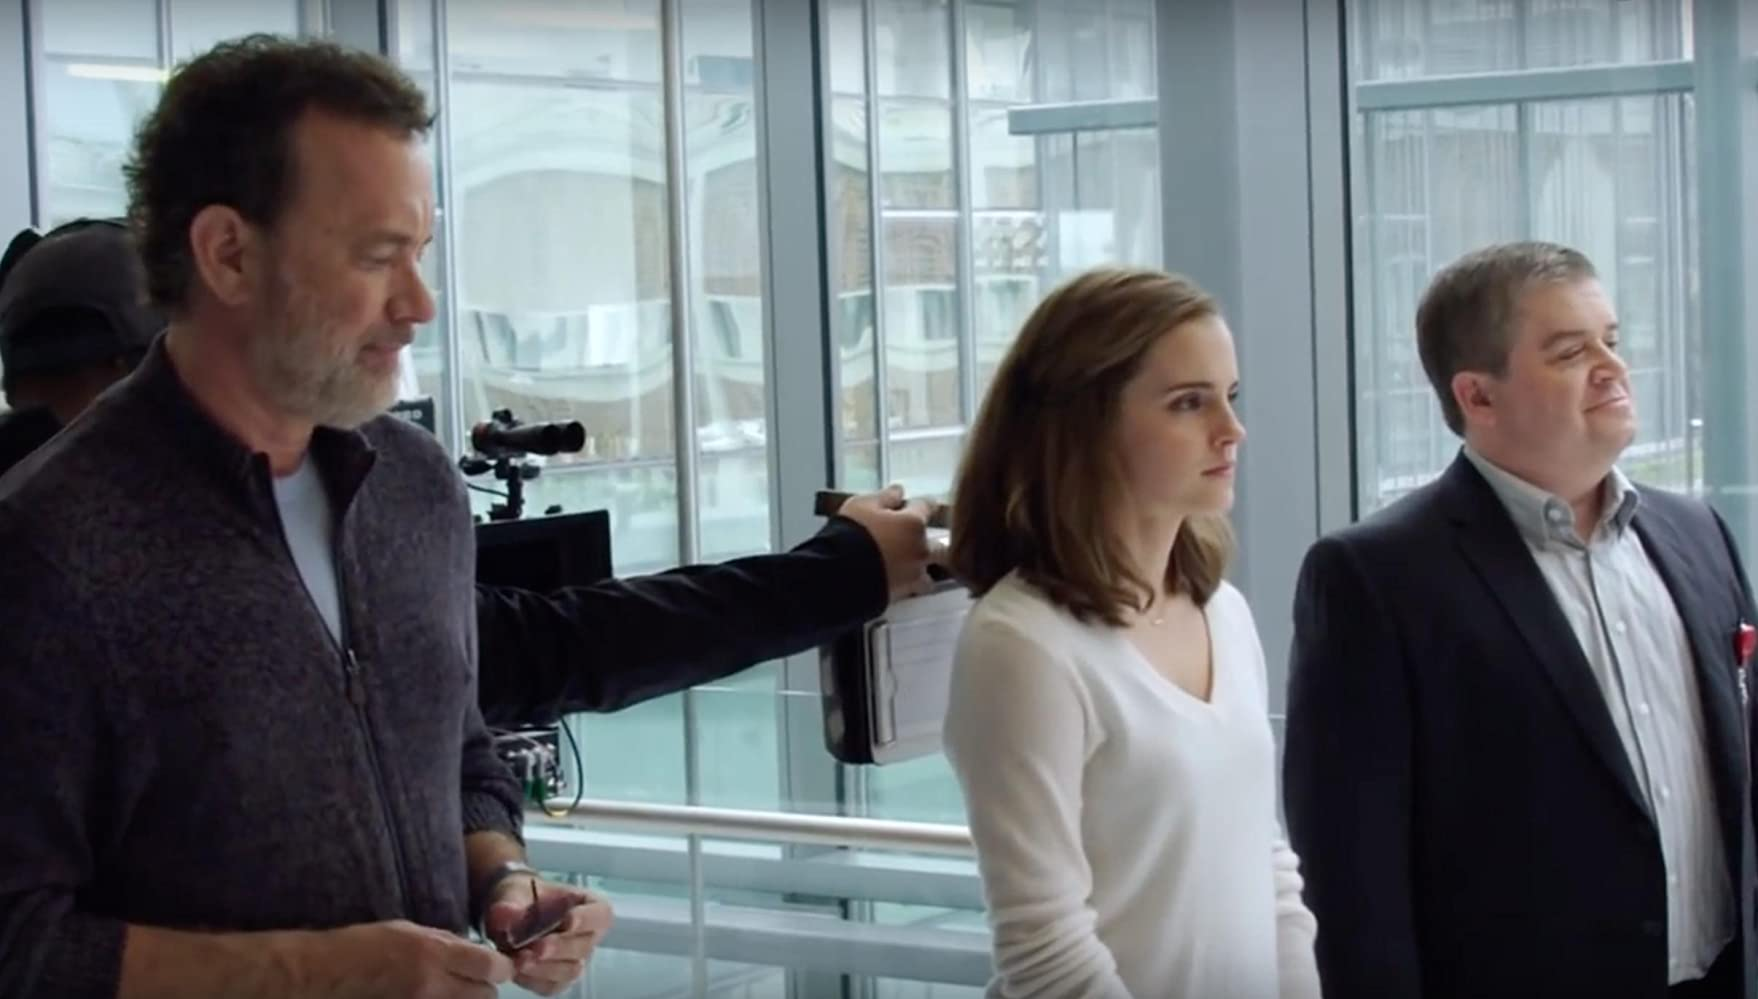 Tom Hanks, Patton Oswalt, and Emma Watson in The Circle (2017)